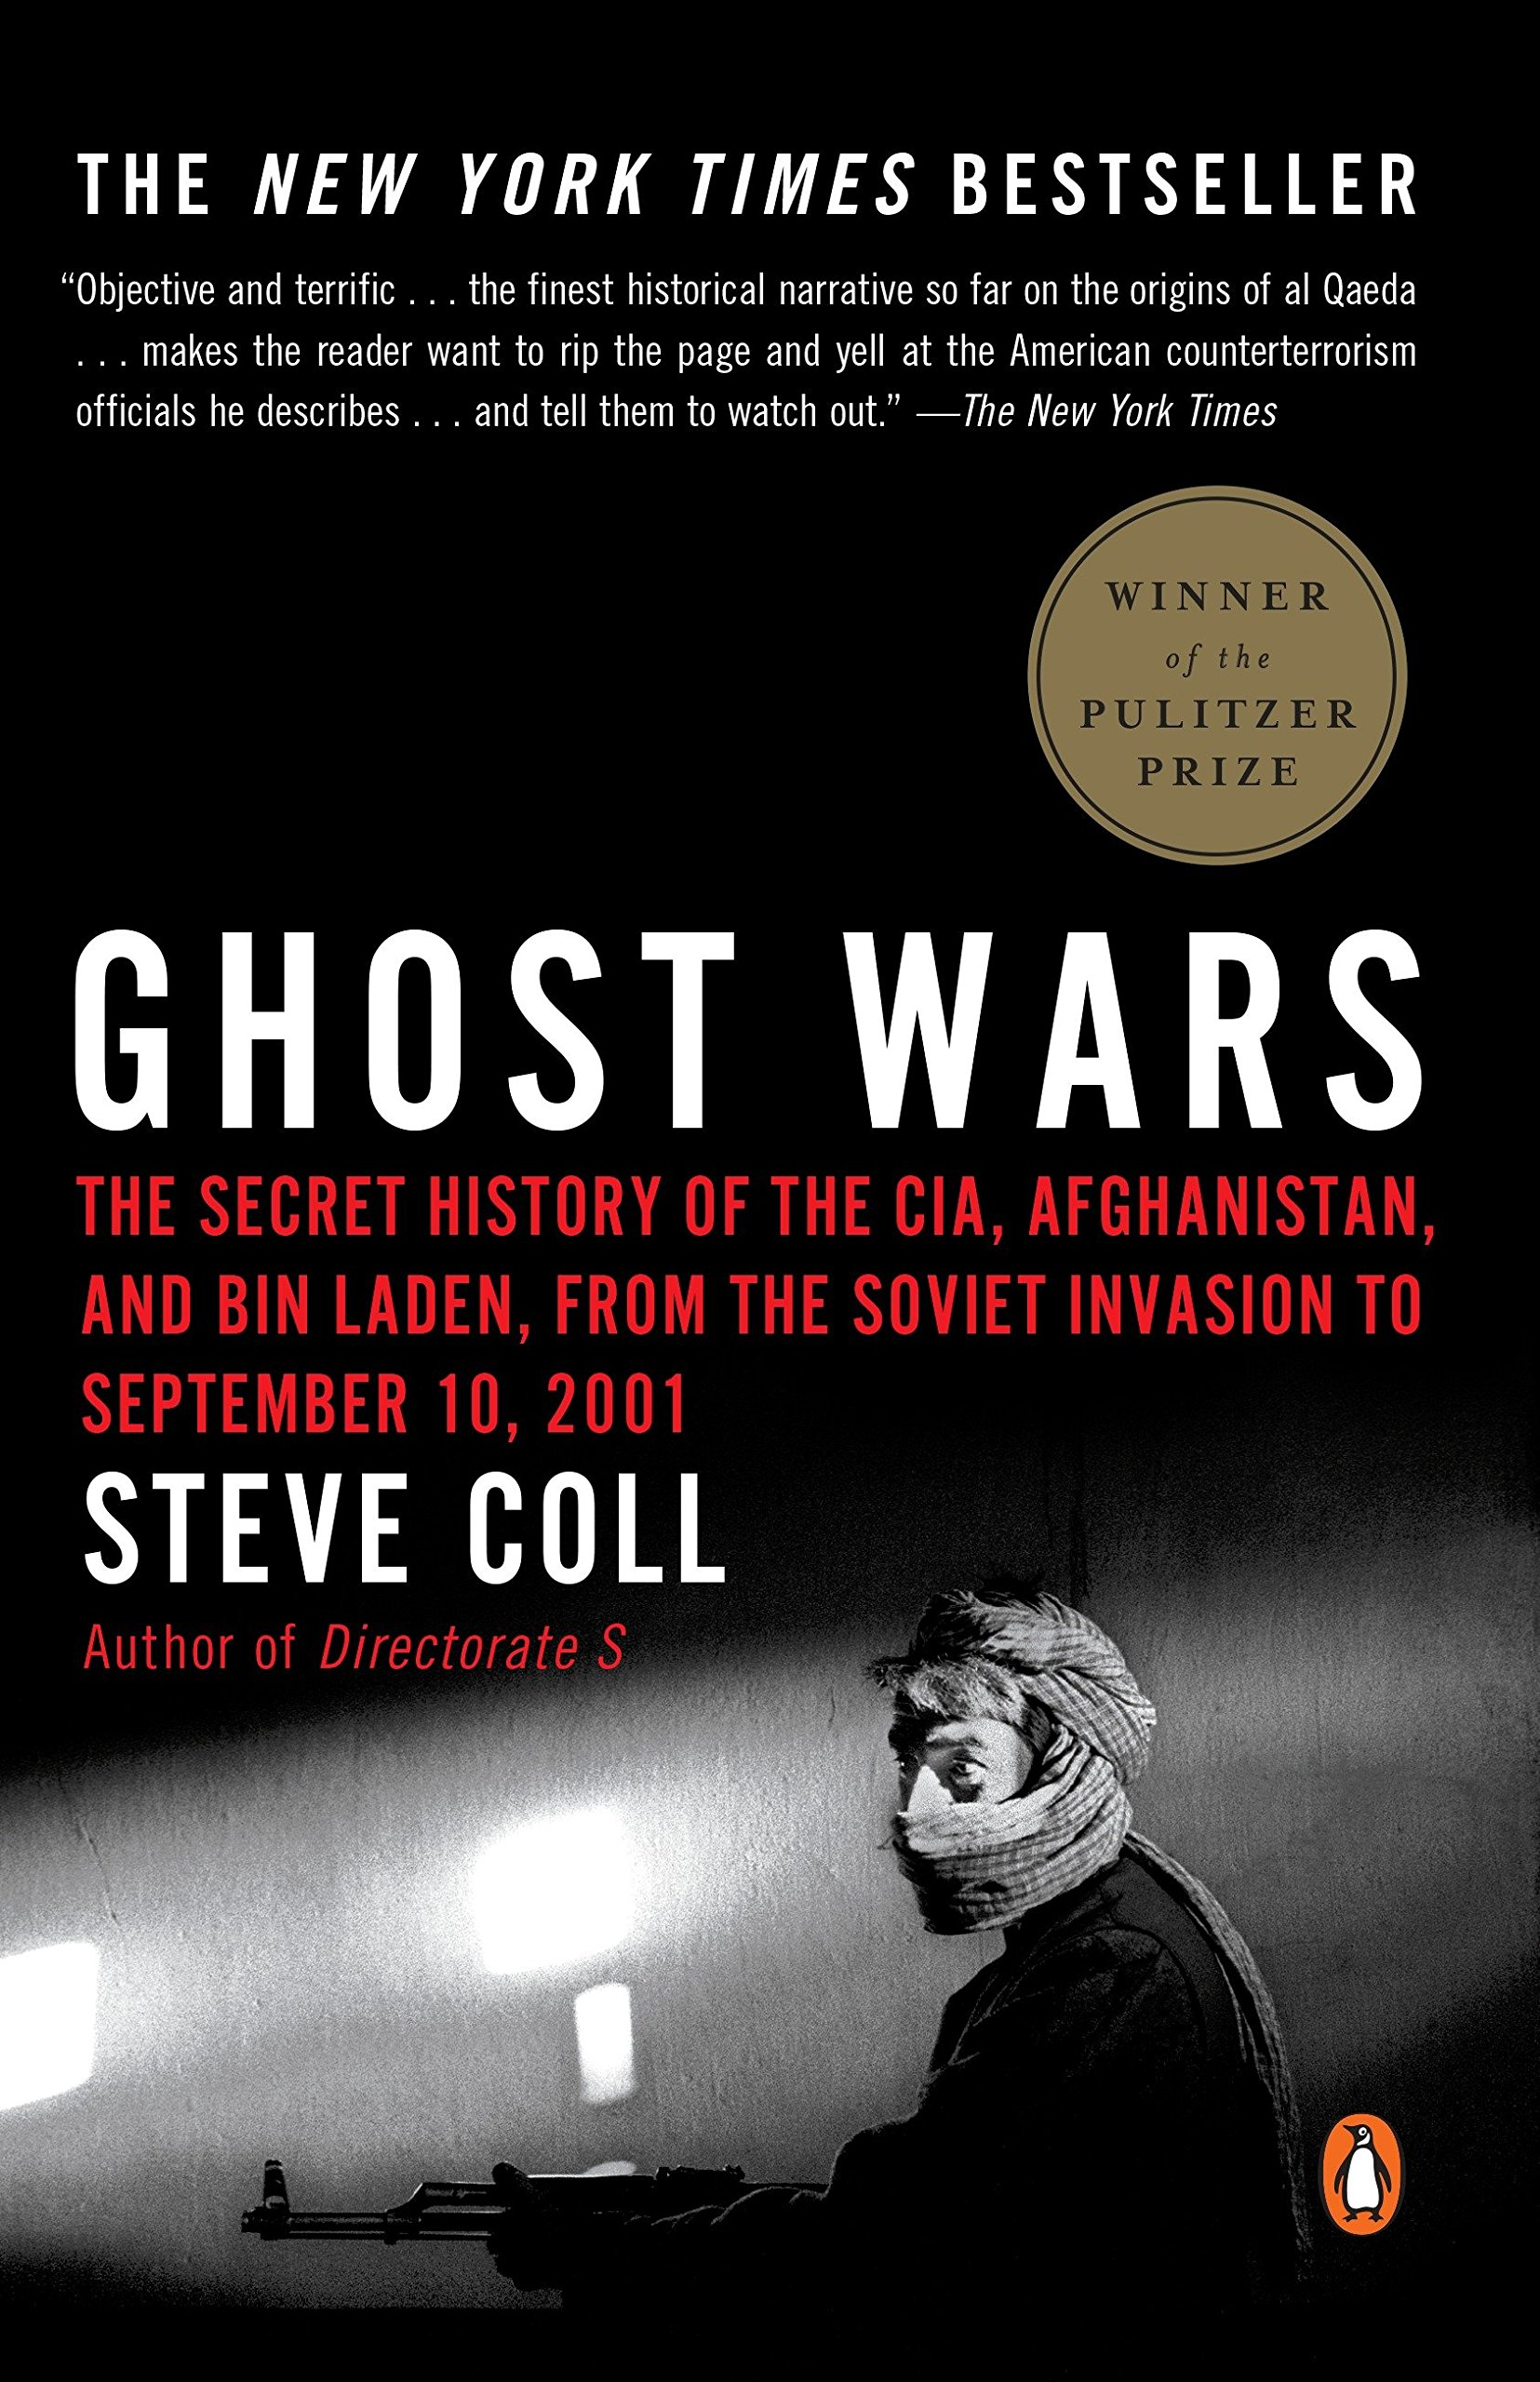 Amazon fr - Ghost Wars: The Secret History of the CIA, Afghanistan